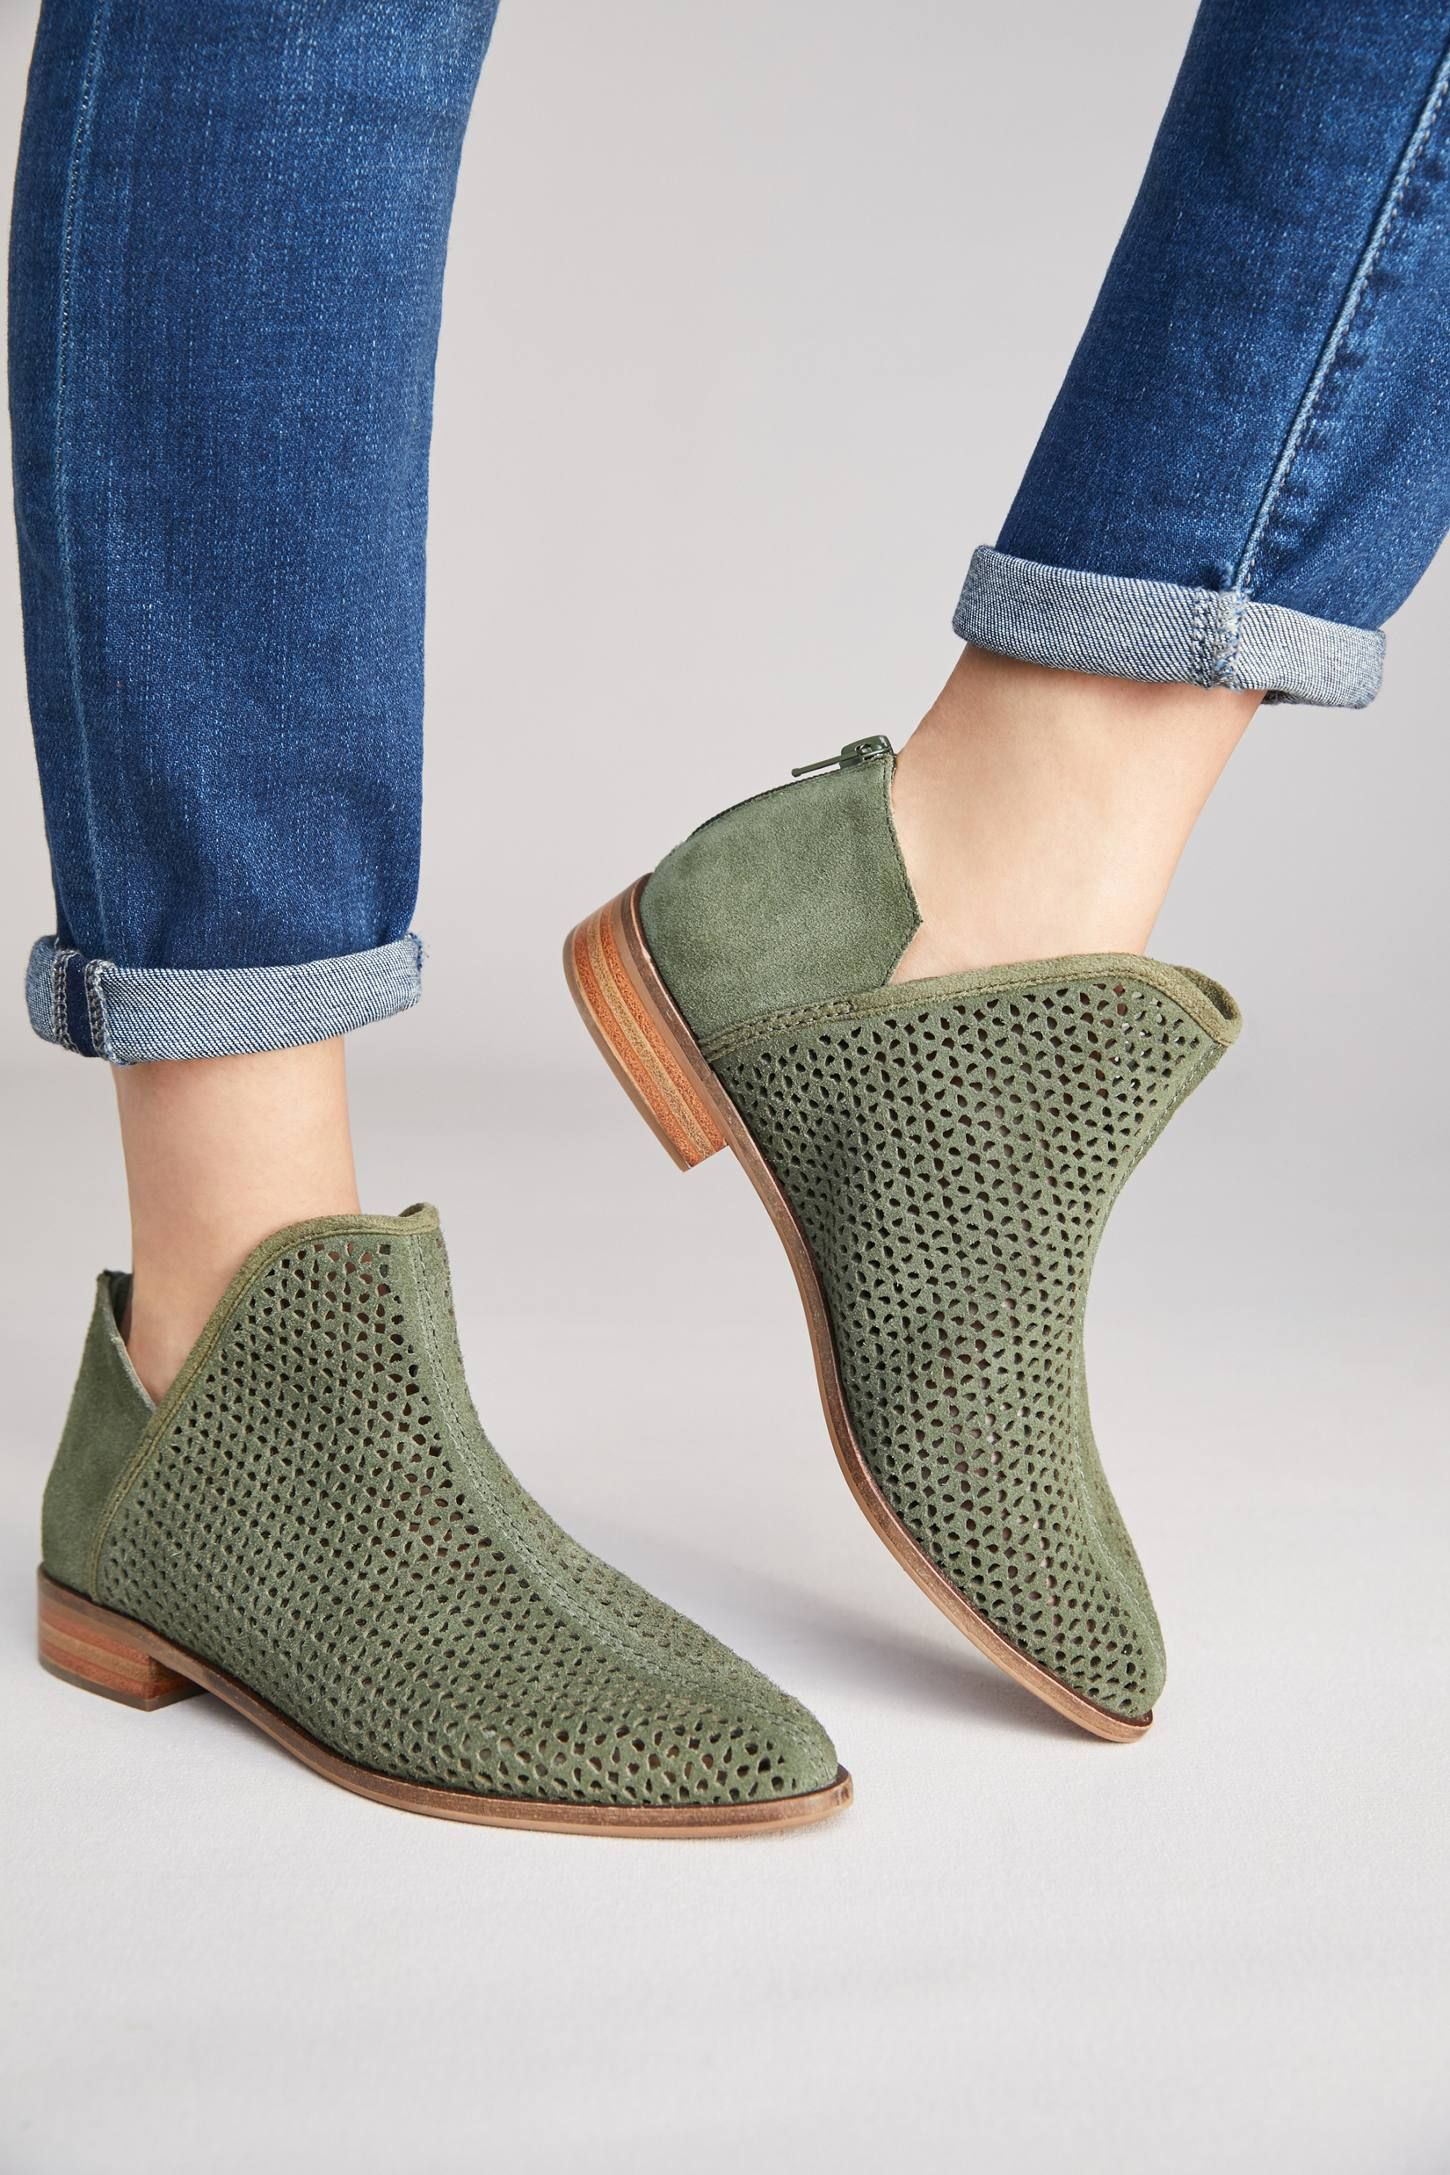 Brand New Kelsi Girls Infants Suede Ankle Boots Sizes 3 To 7